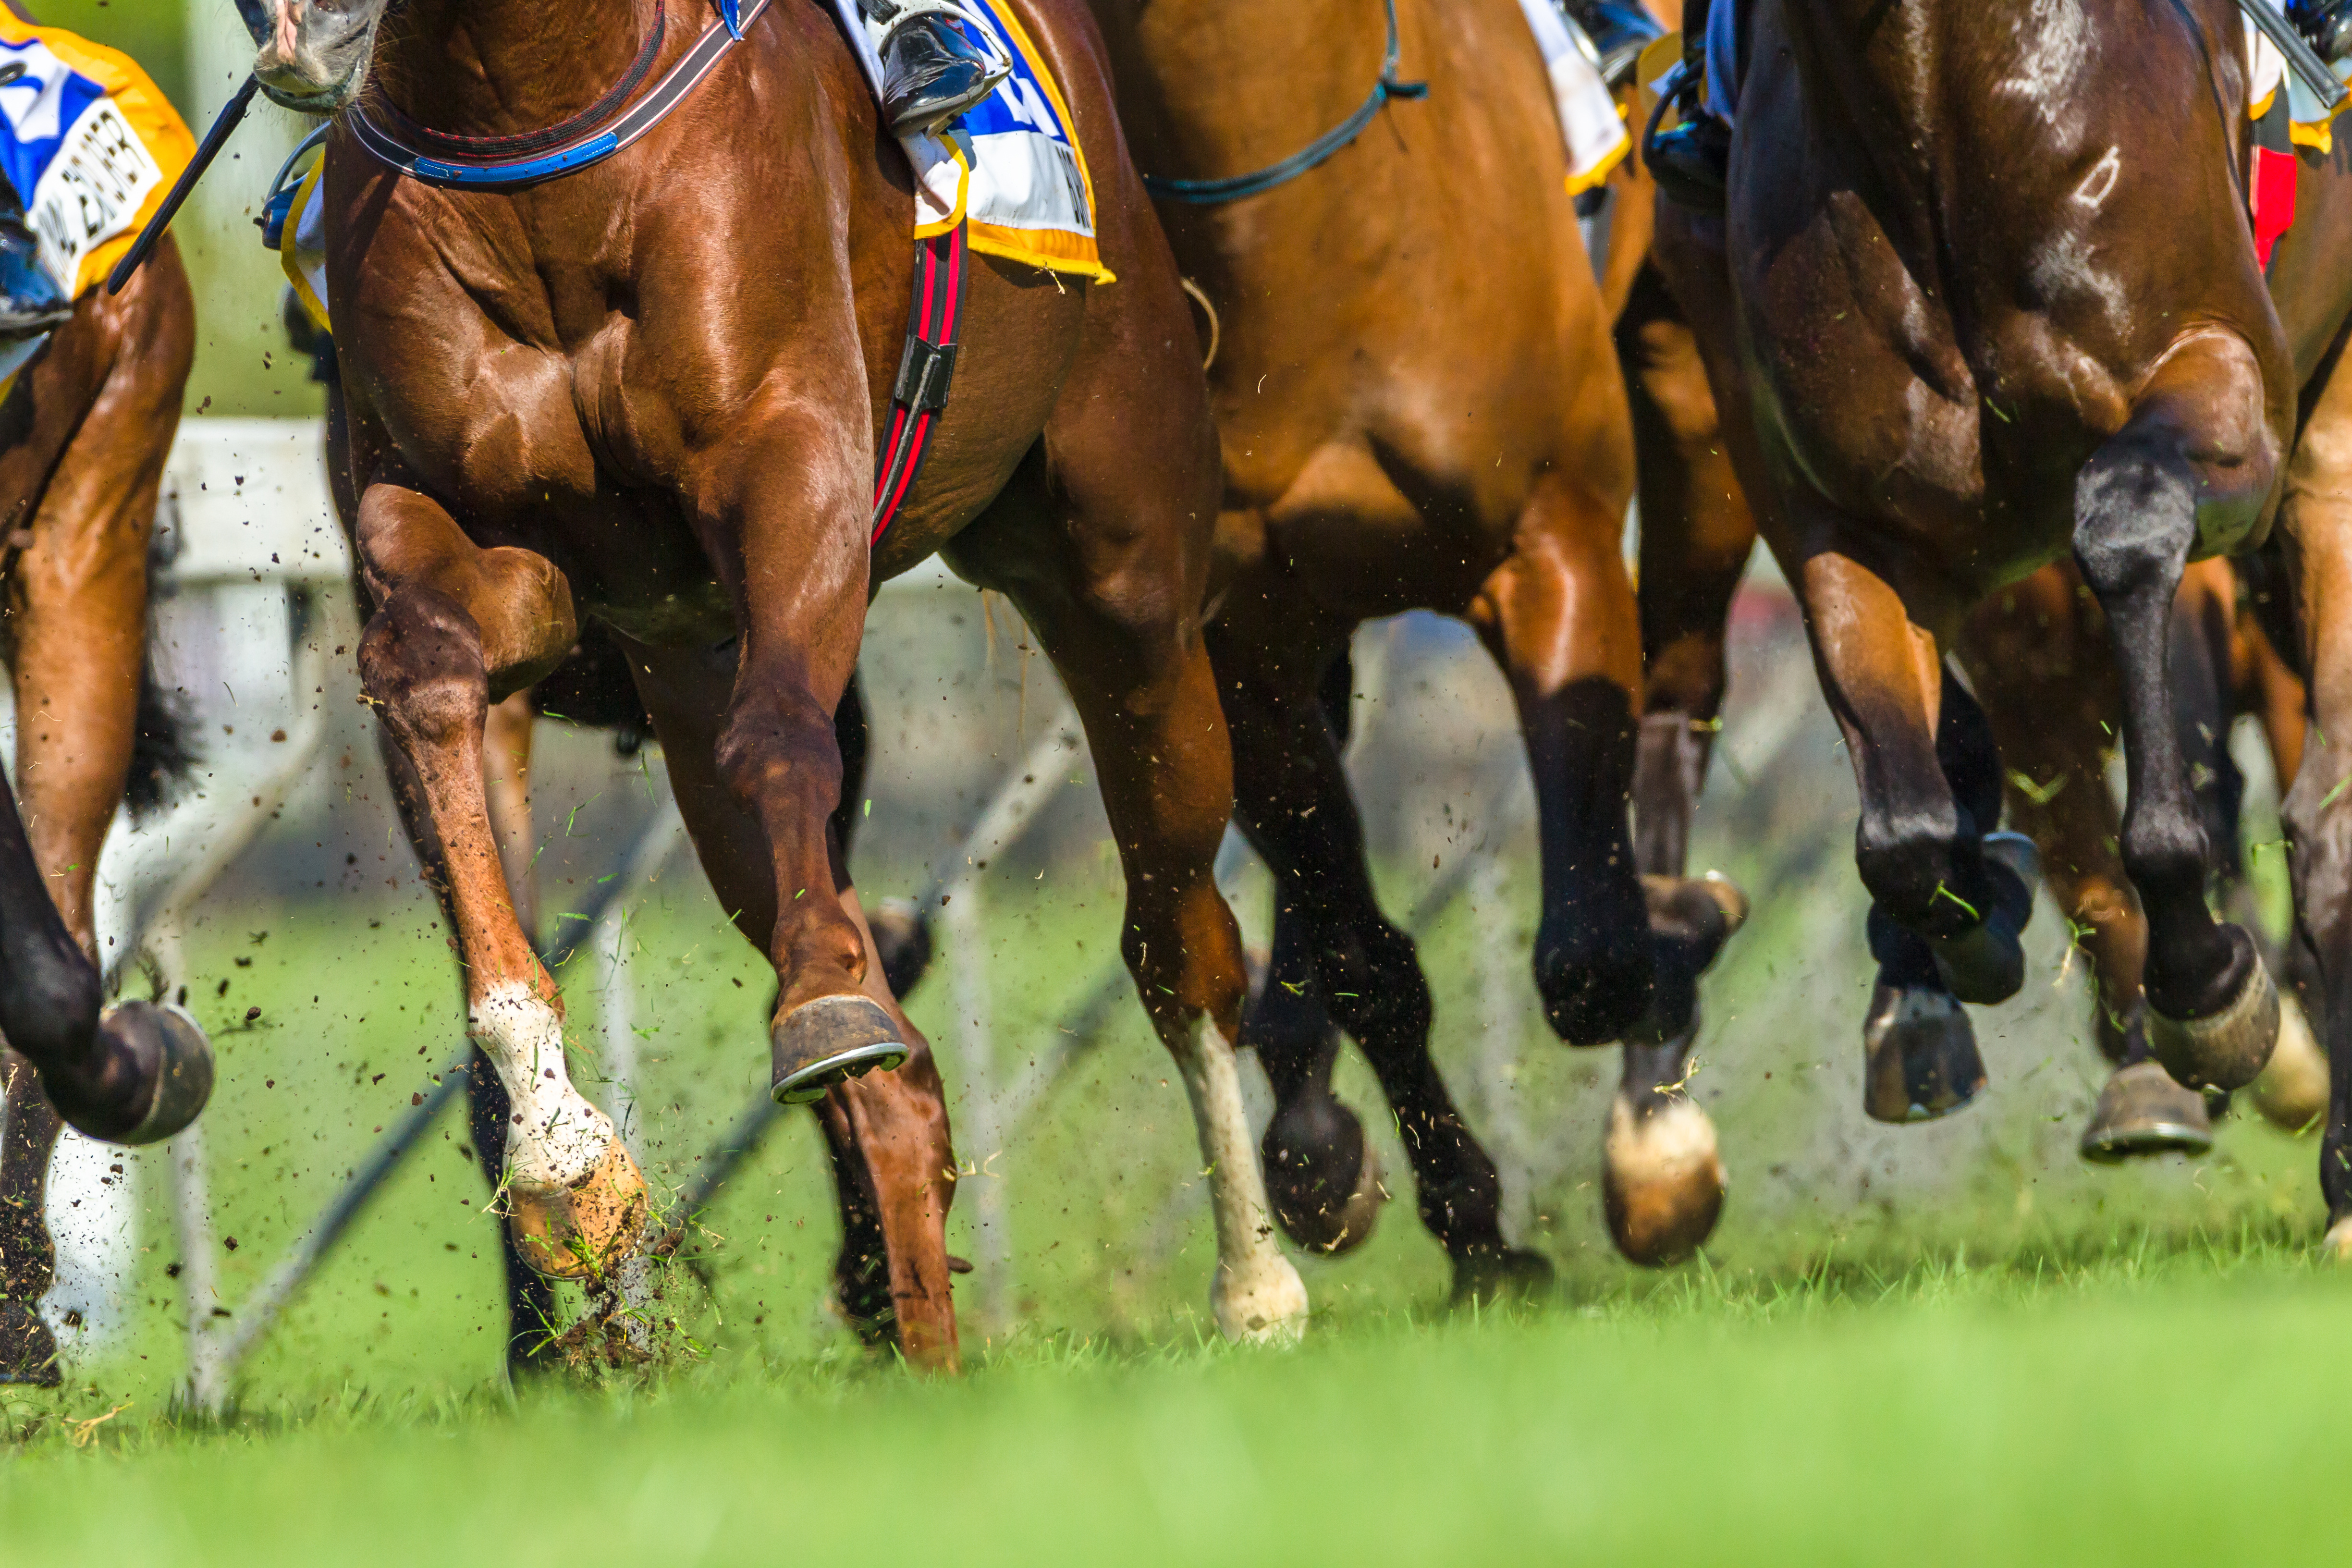 'We can't abandon them': Why racing is different to 'other sports' during coronavirus crisis